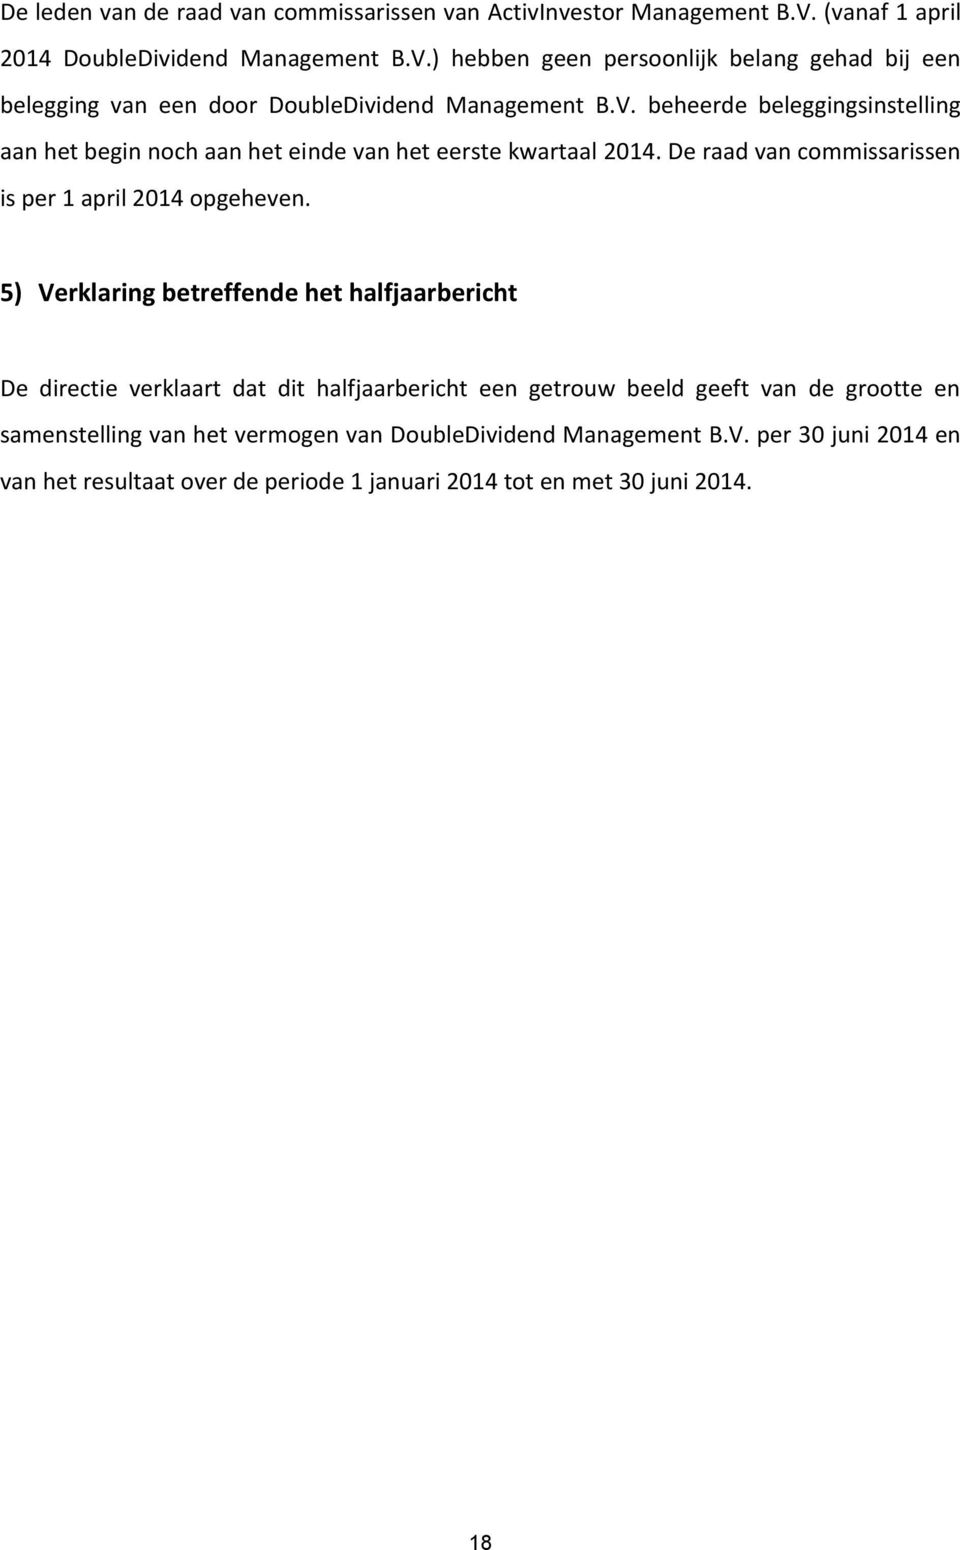 De raad van commissarissen is per 1 april 2014 opgeheven.